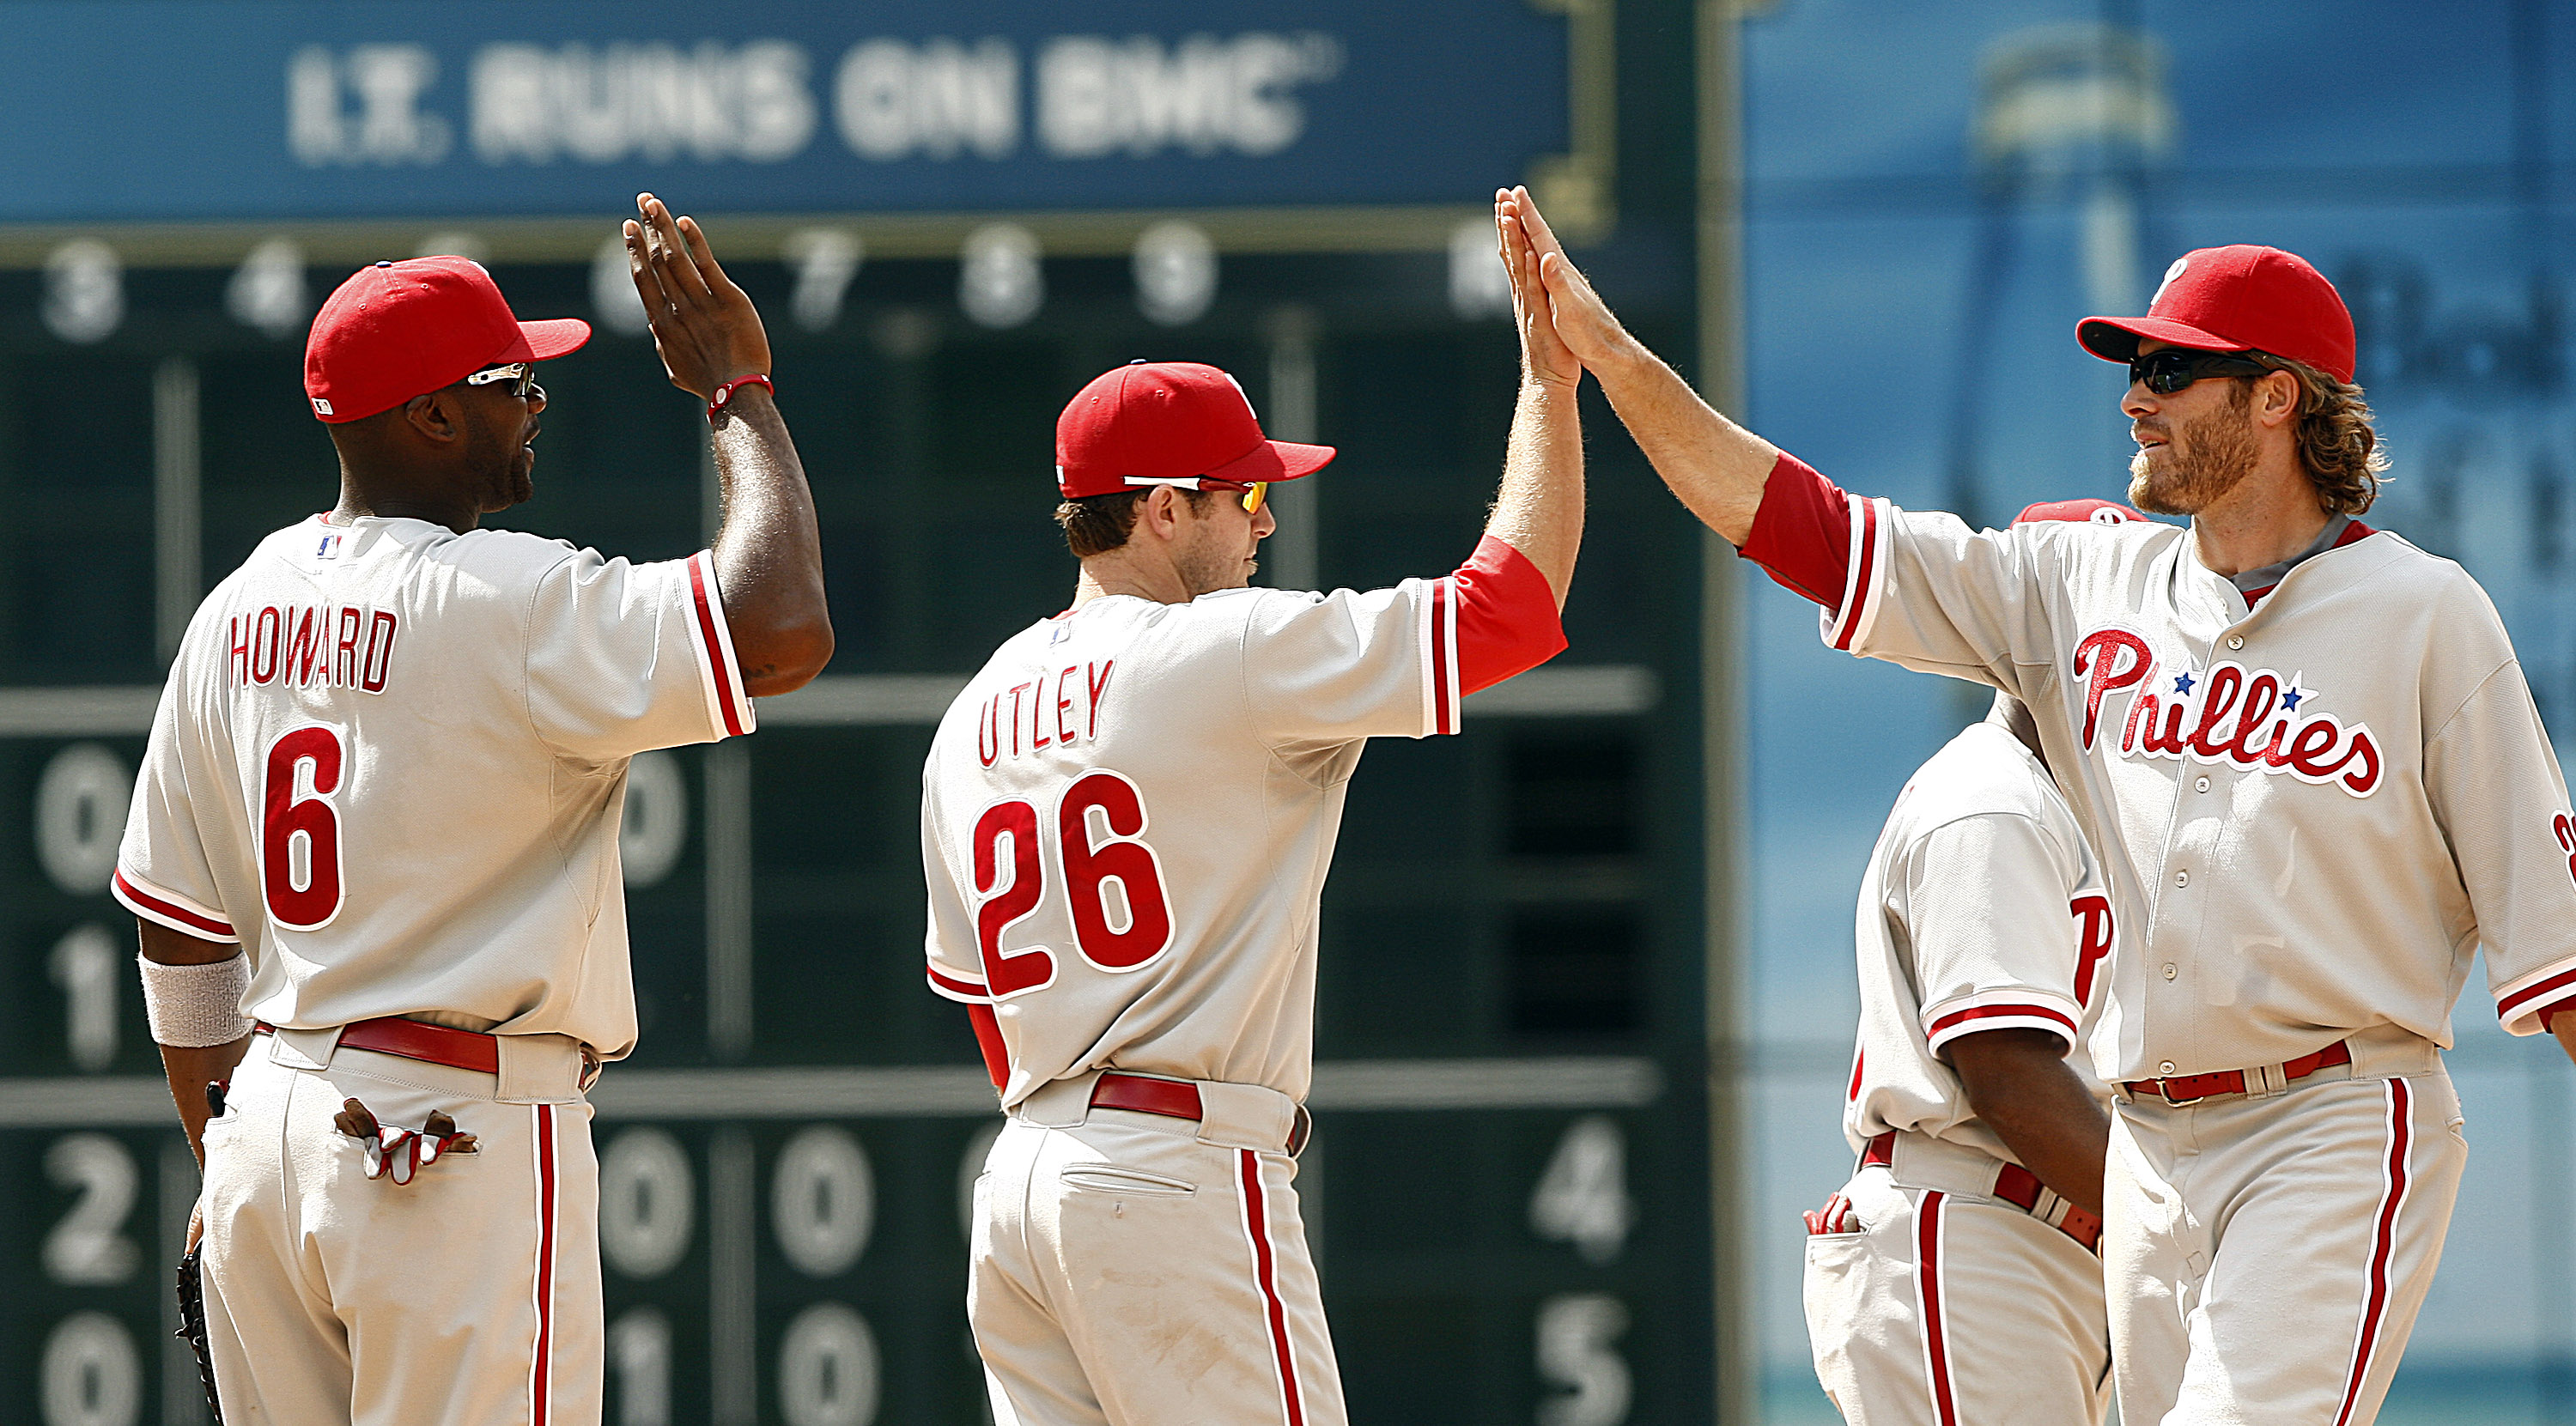 HOUSTON - APRIL 11:  Jayson Werth #28 of the Philadelphia Phillies (R) high fives Chase Utley #26 and Ryan Howard #6 after defeating the Houston Astros 2-1 at Minute Maid Park on April 11, 2010 in Houston, Texas.  (Photo by Bob Levey/Getty Images)